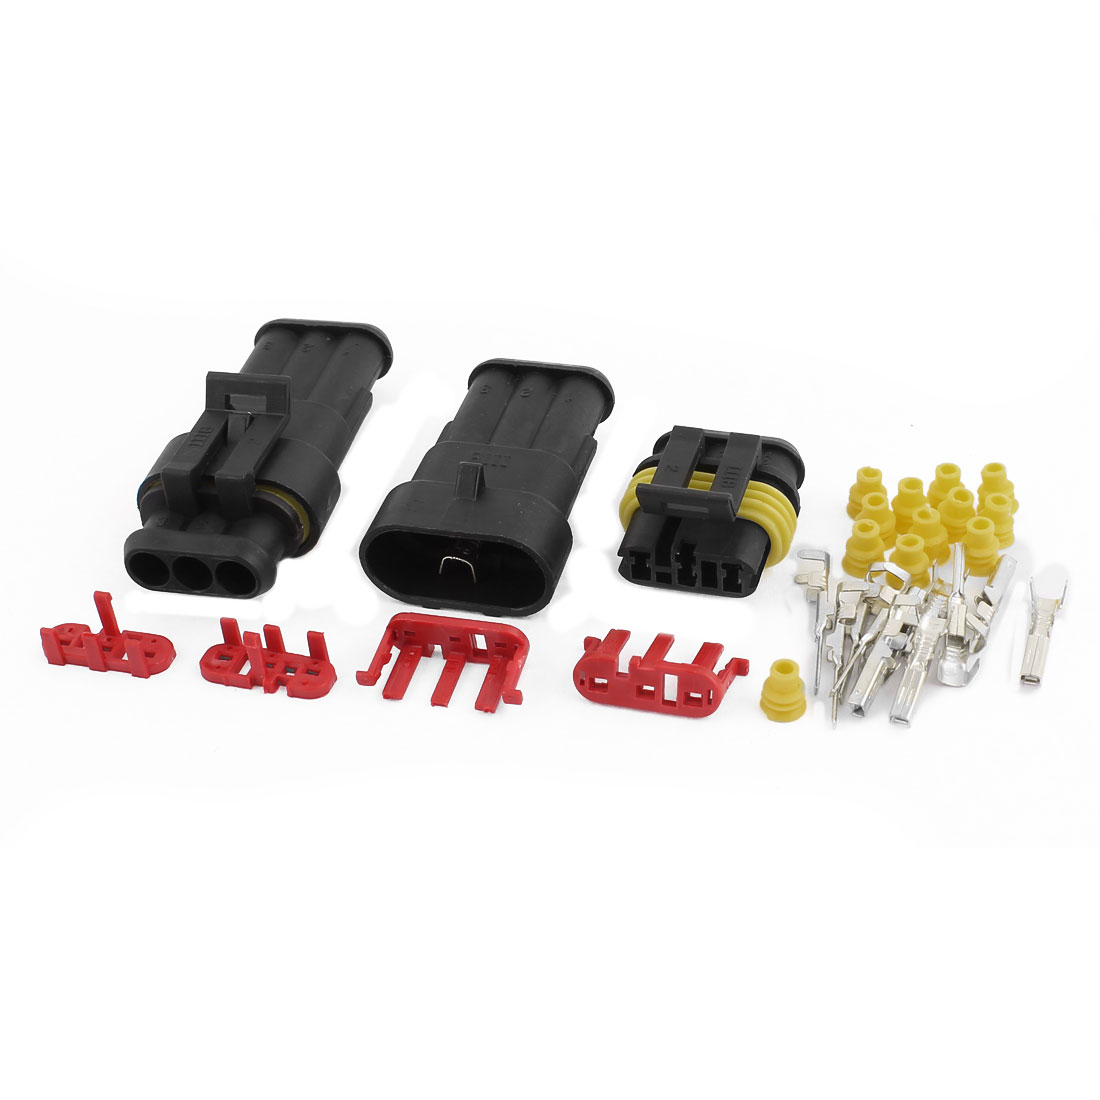 2 Sets HID 3P Way Sealed Water Resistant Electrical Wire Lead Connector Adapter for Car Auto